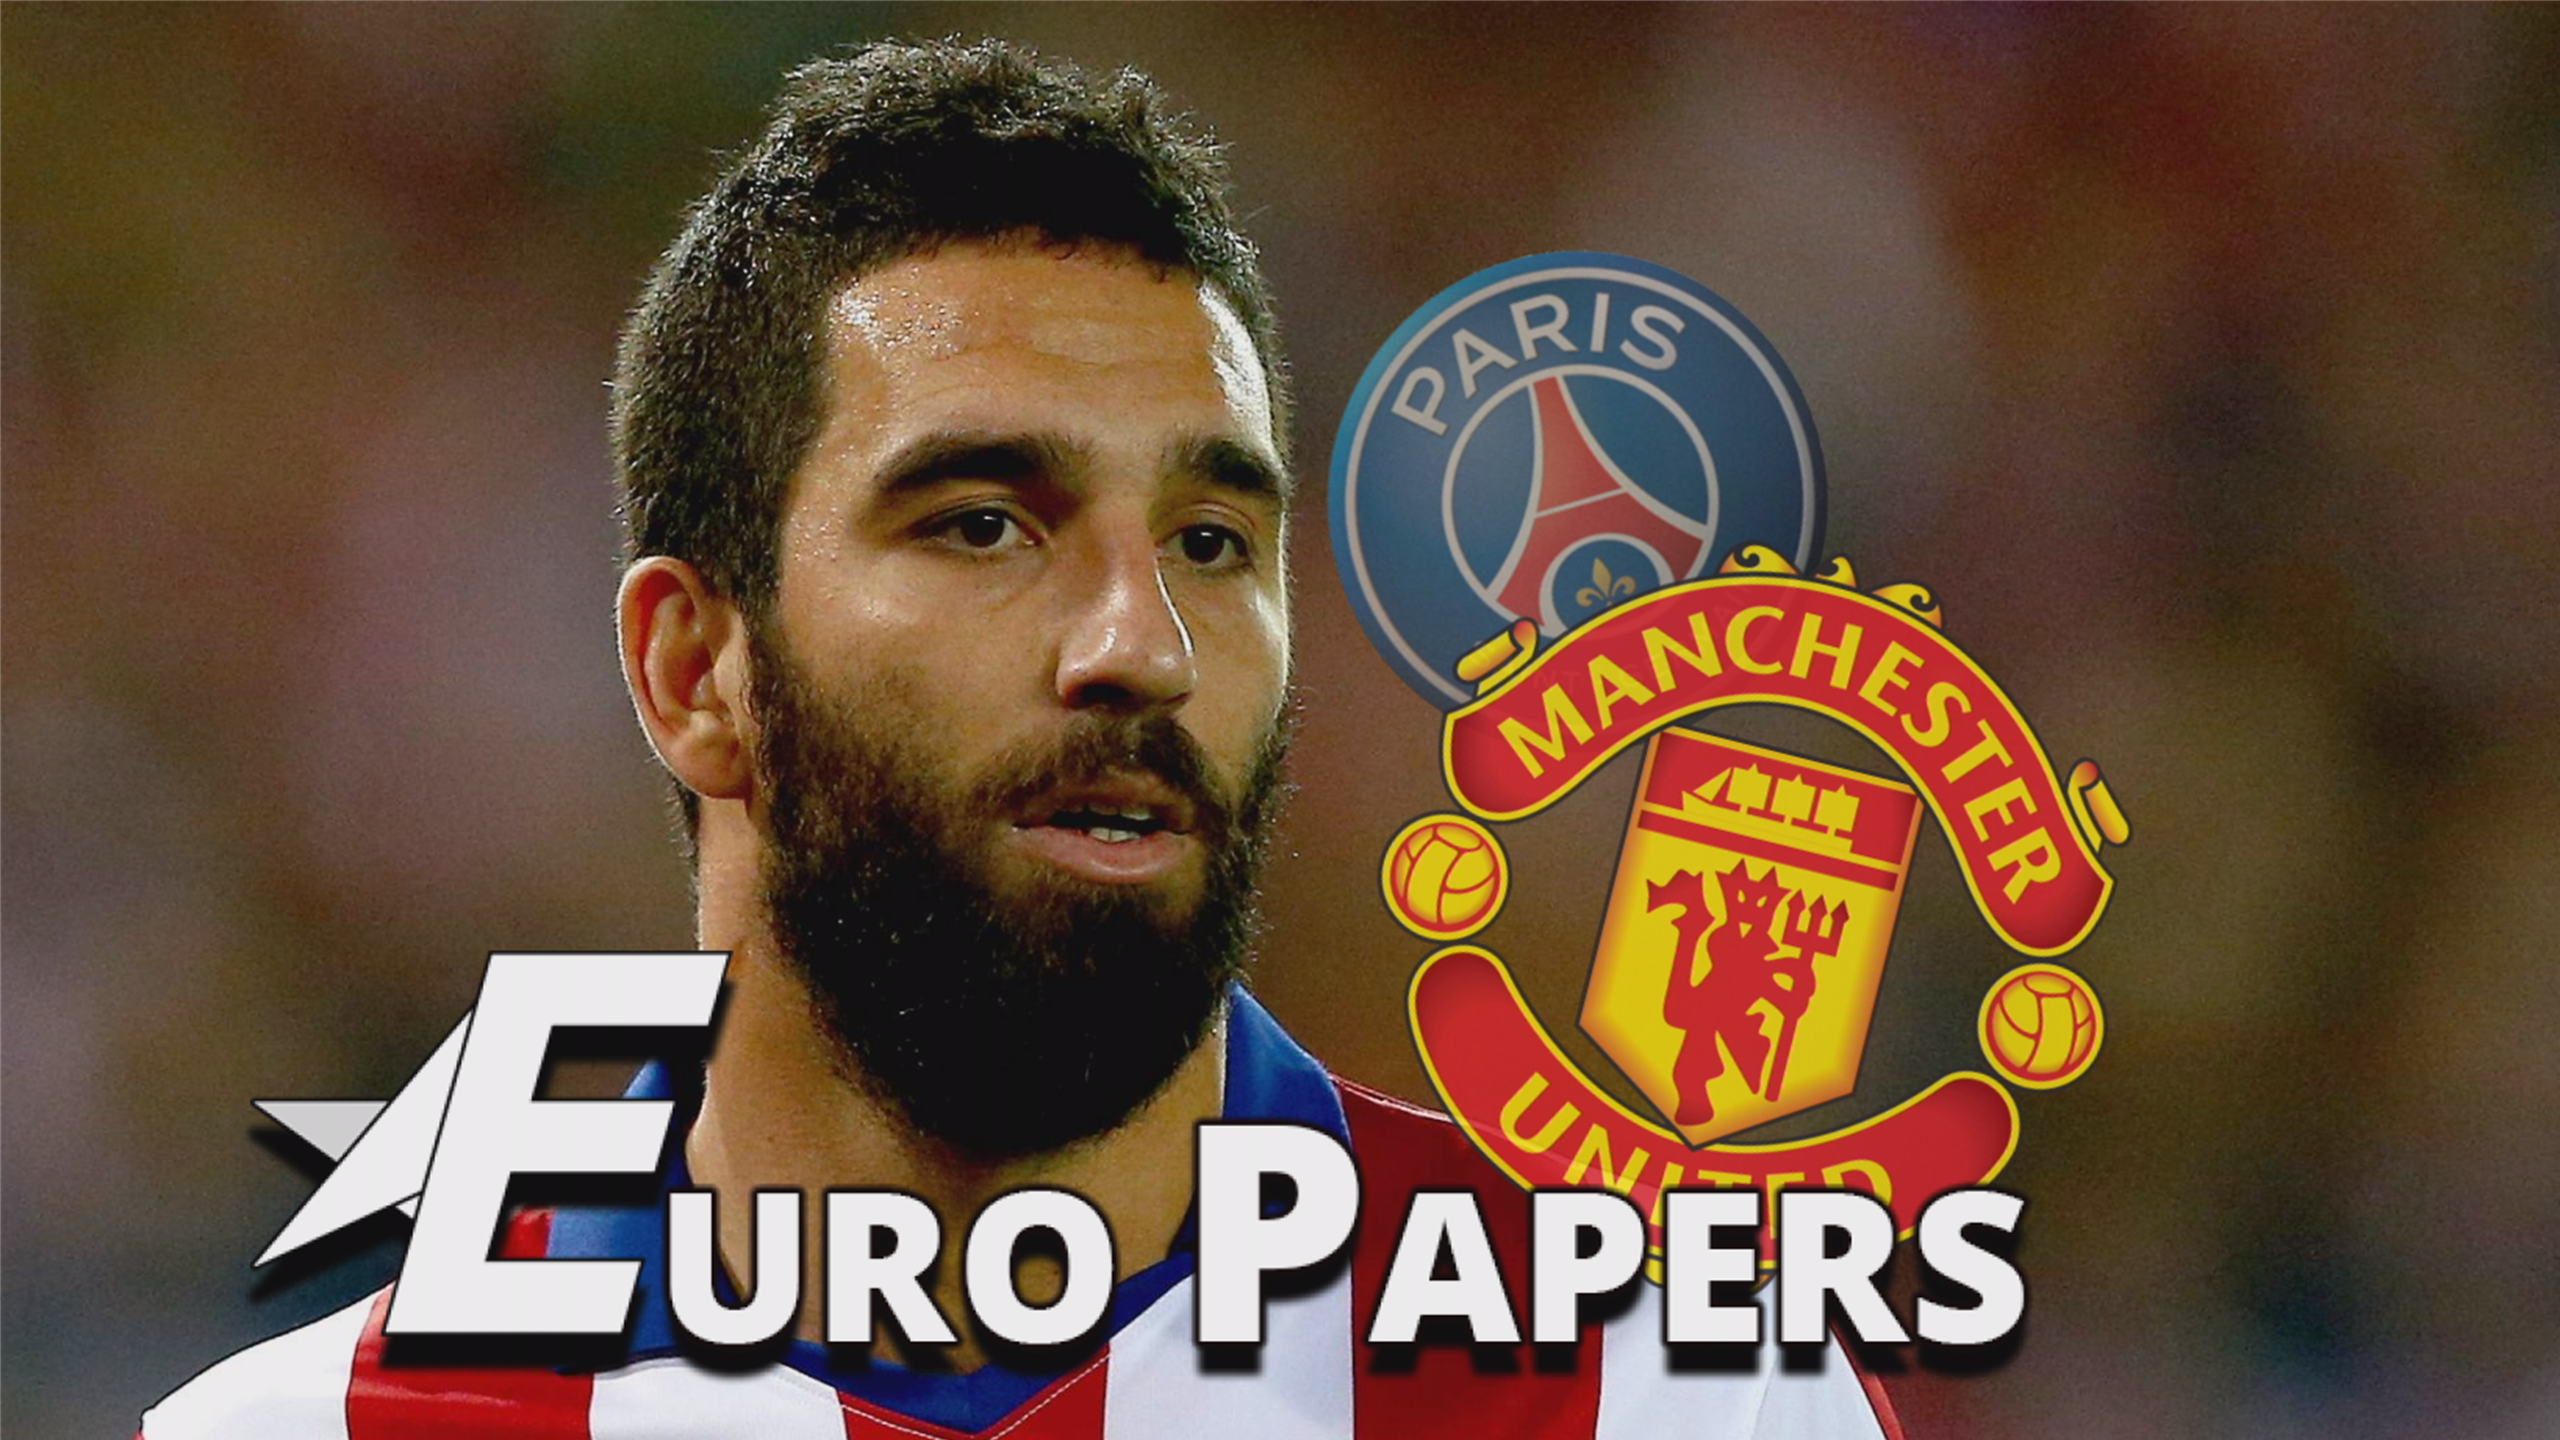 Man United offer 'blows away' PSG bid for Arda Turan - Euro Papers